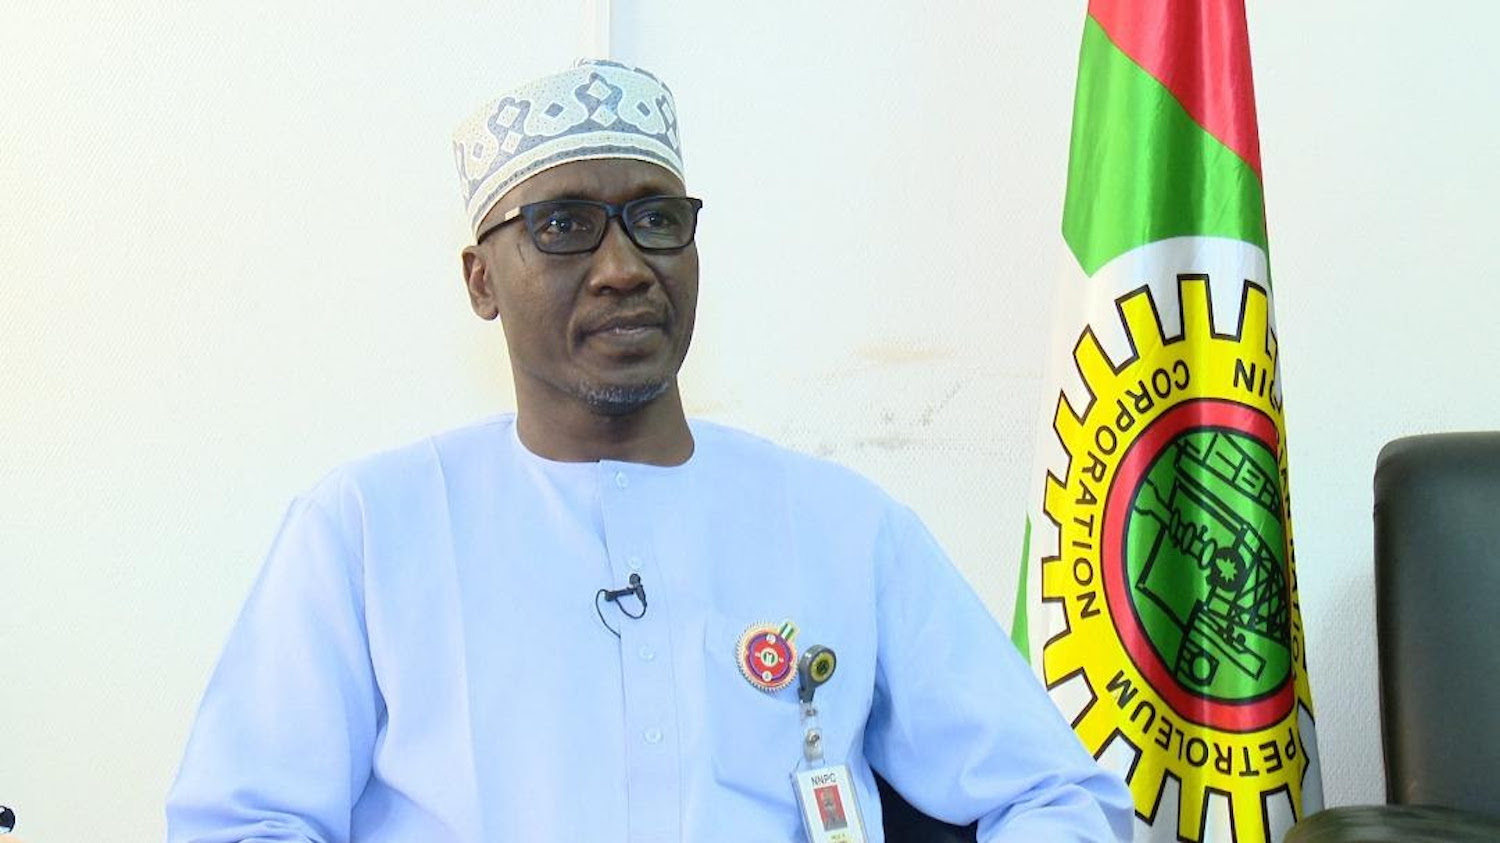 Petrol subsidy continues in May, says NNPC GMD